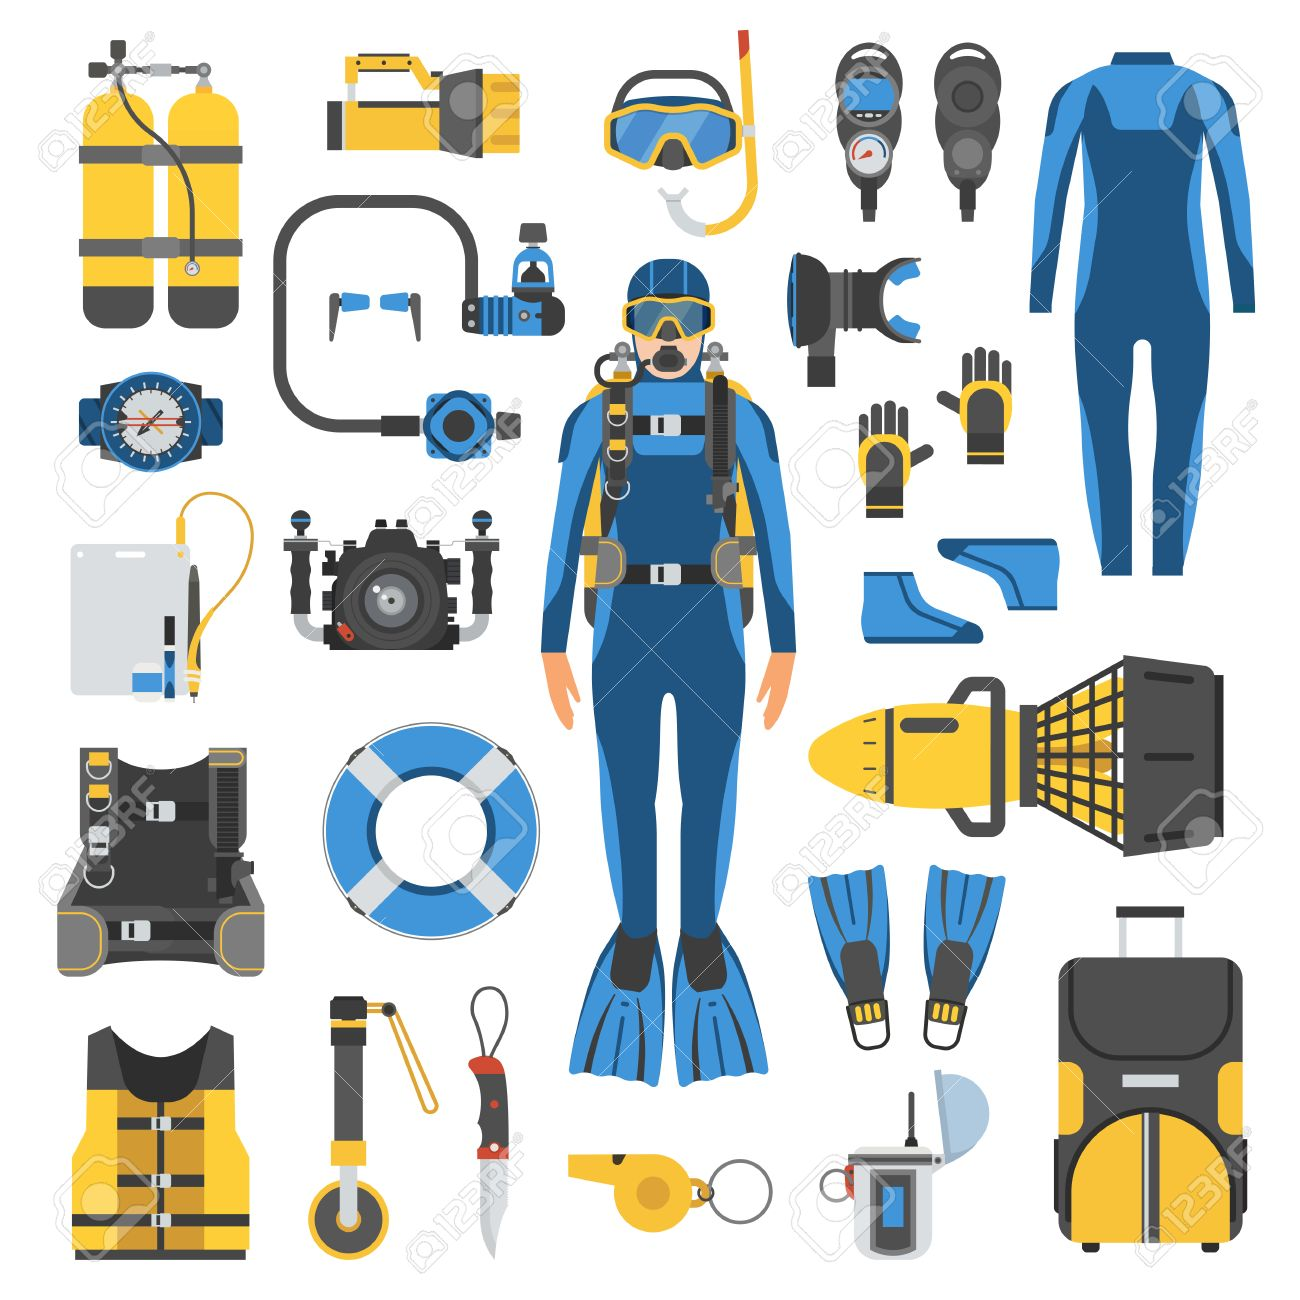 Diving set of elements. Diver man in wetsuit, scuba gear and accessories. Scuba-diving icons. Underwater activity appliances in flat. Scuba and snorkeling kit. Dive suit, aqualung, snorkel, mask, bag. - 59488282